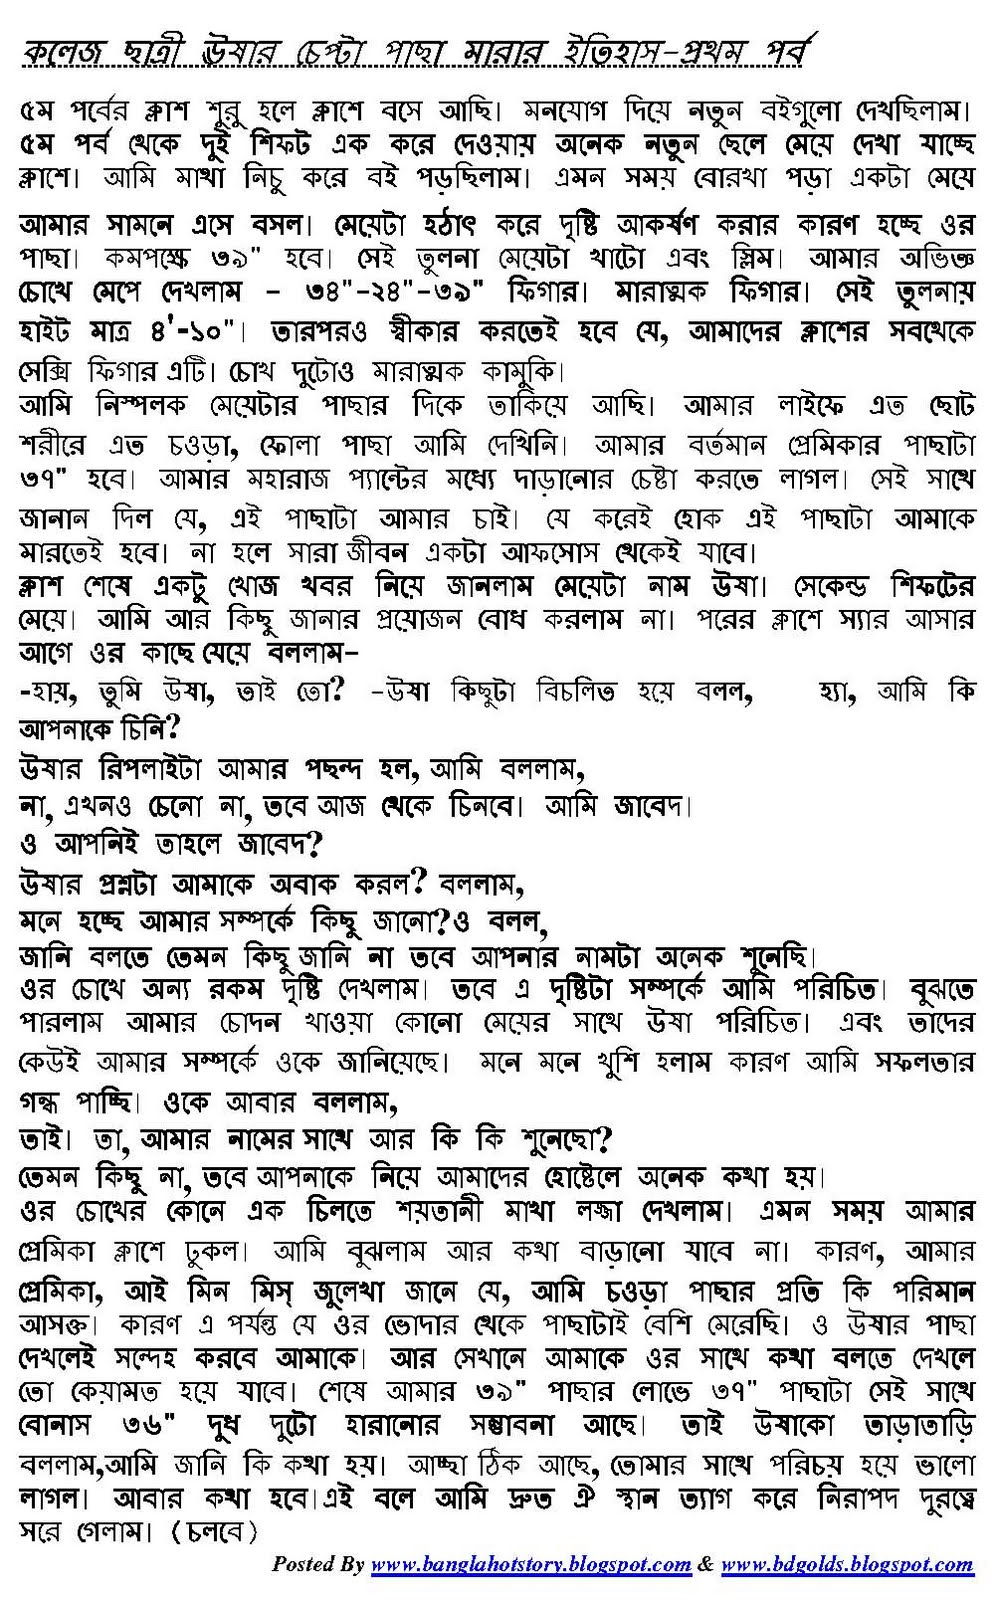 Bangla Choda Chudir Golpo In Bengali Language